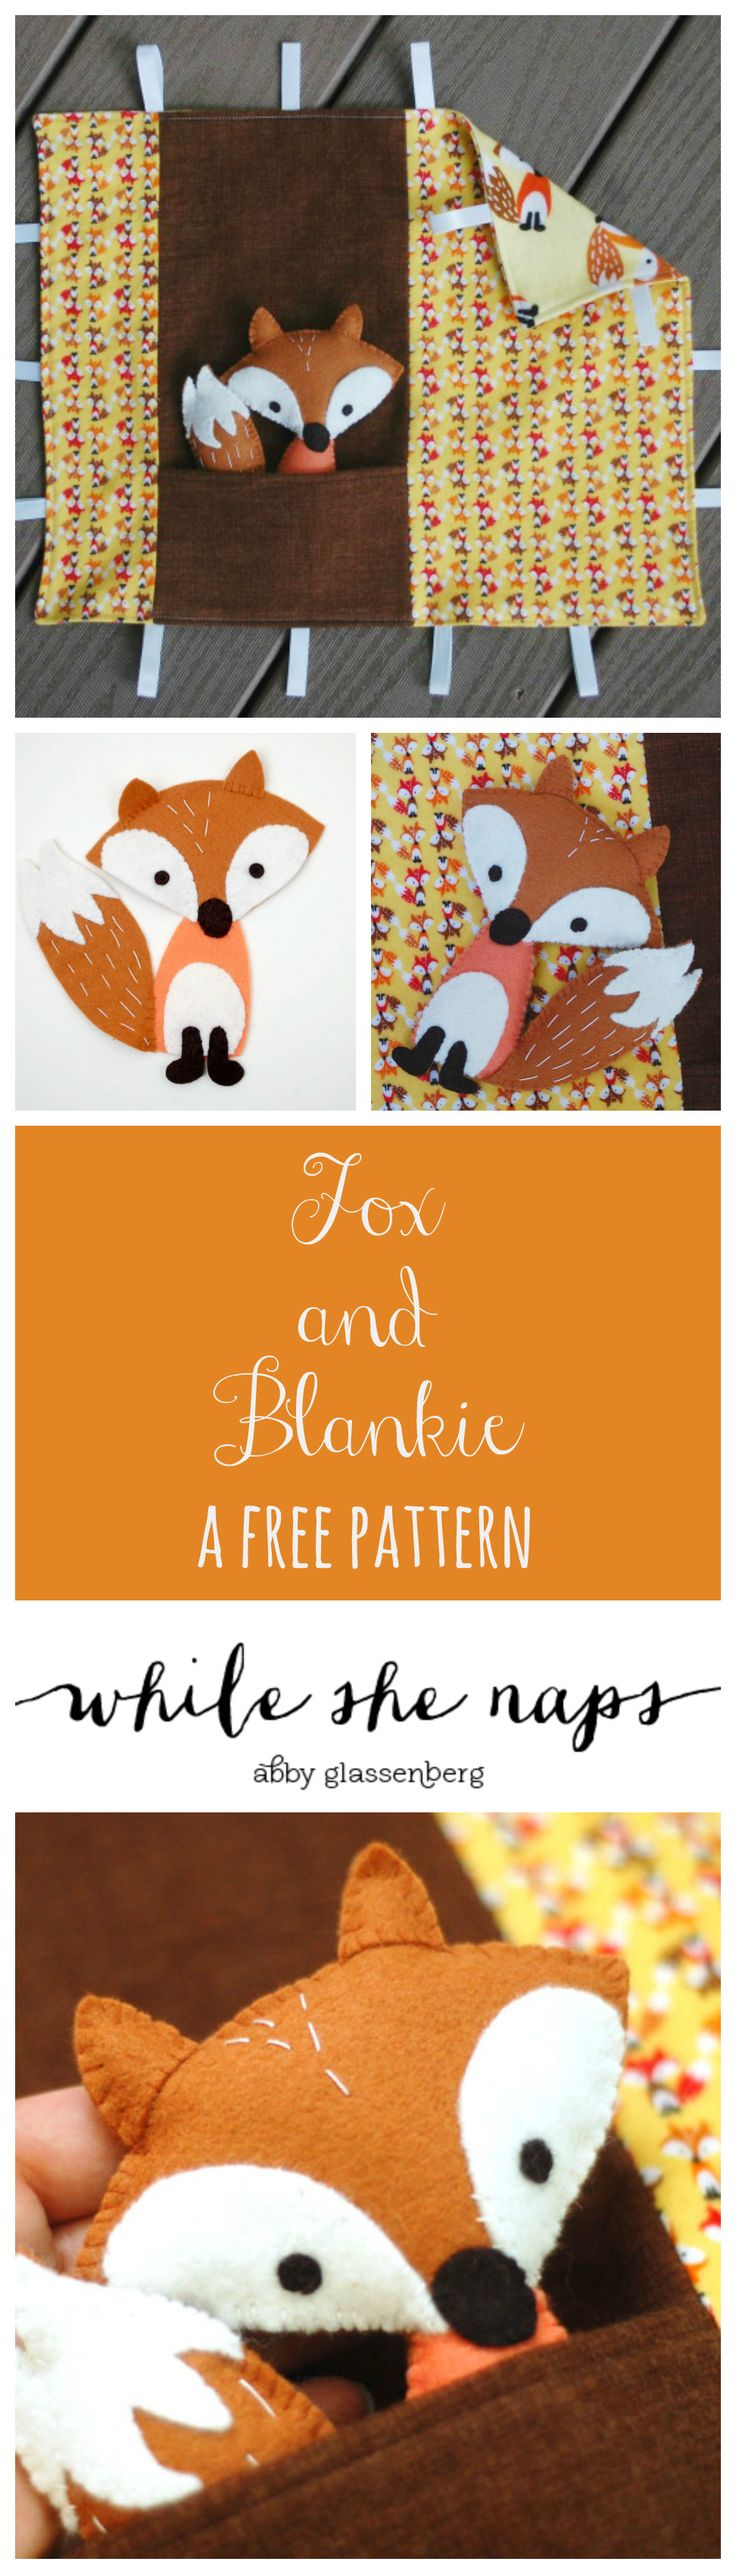 A free pattern for a Fox and Blankie play set.